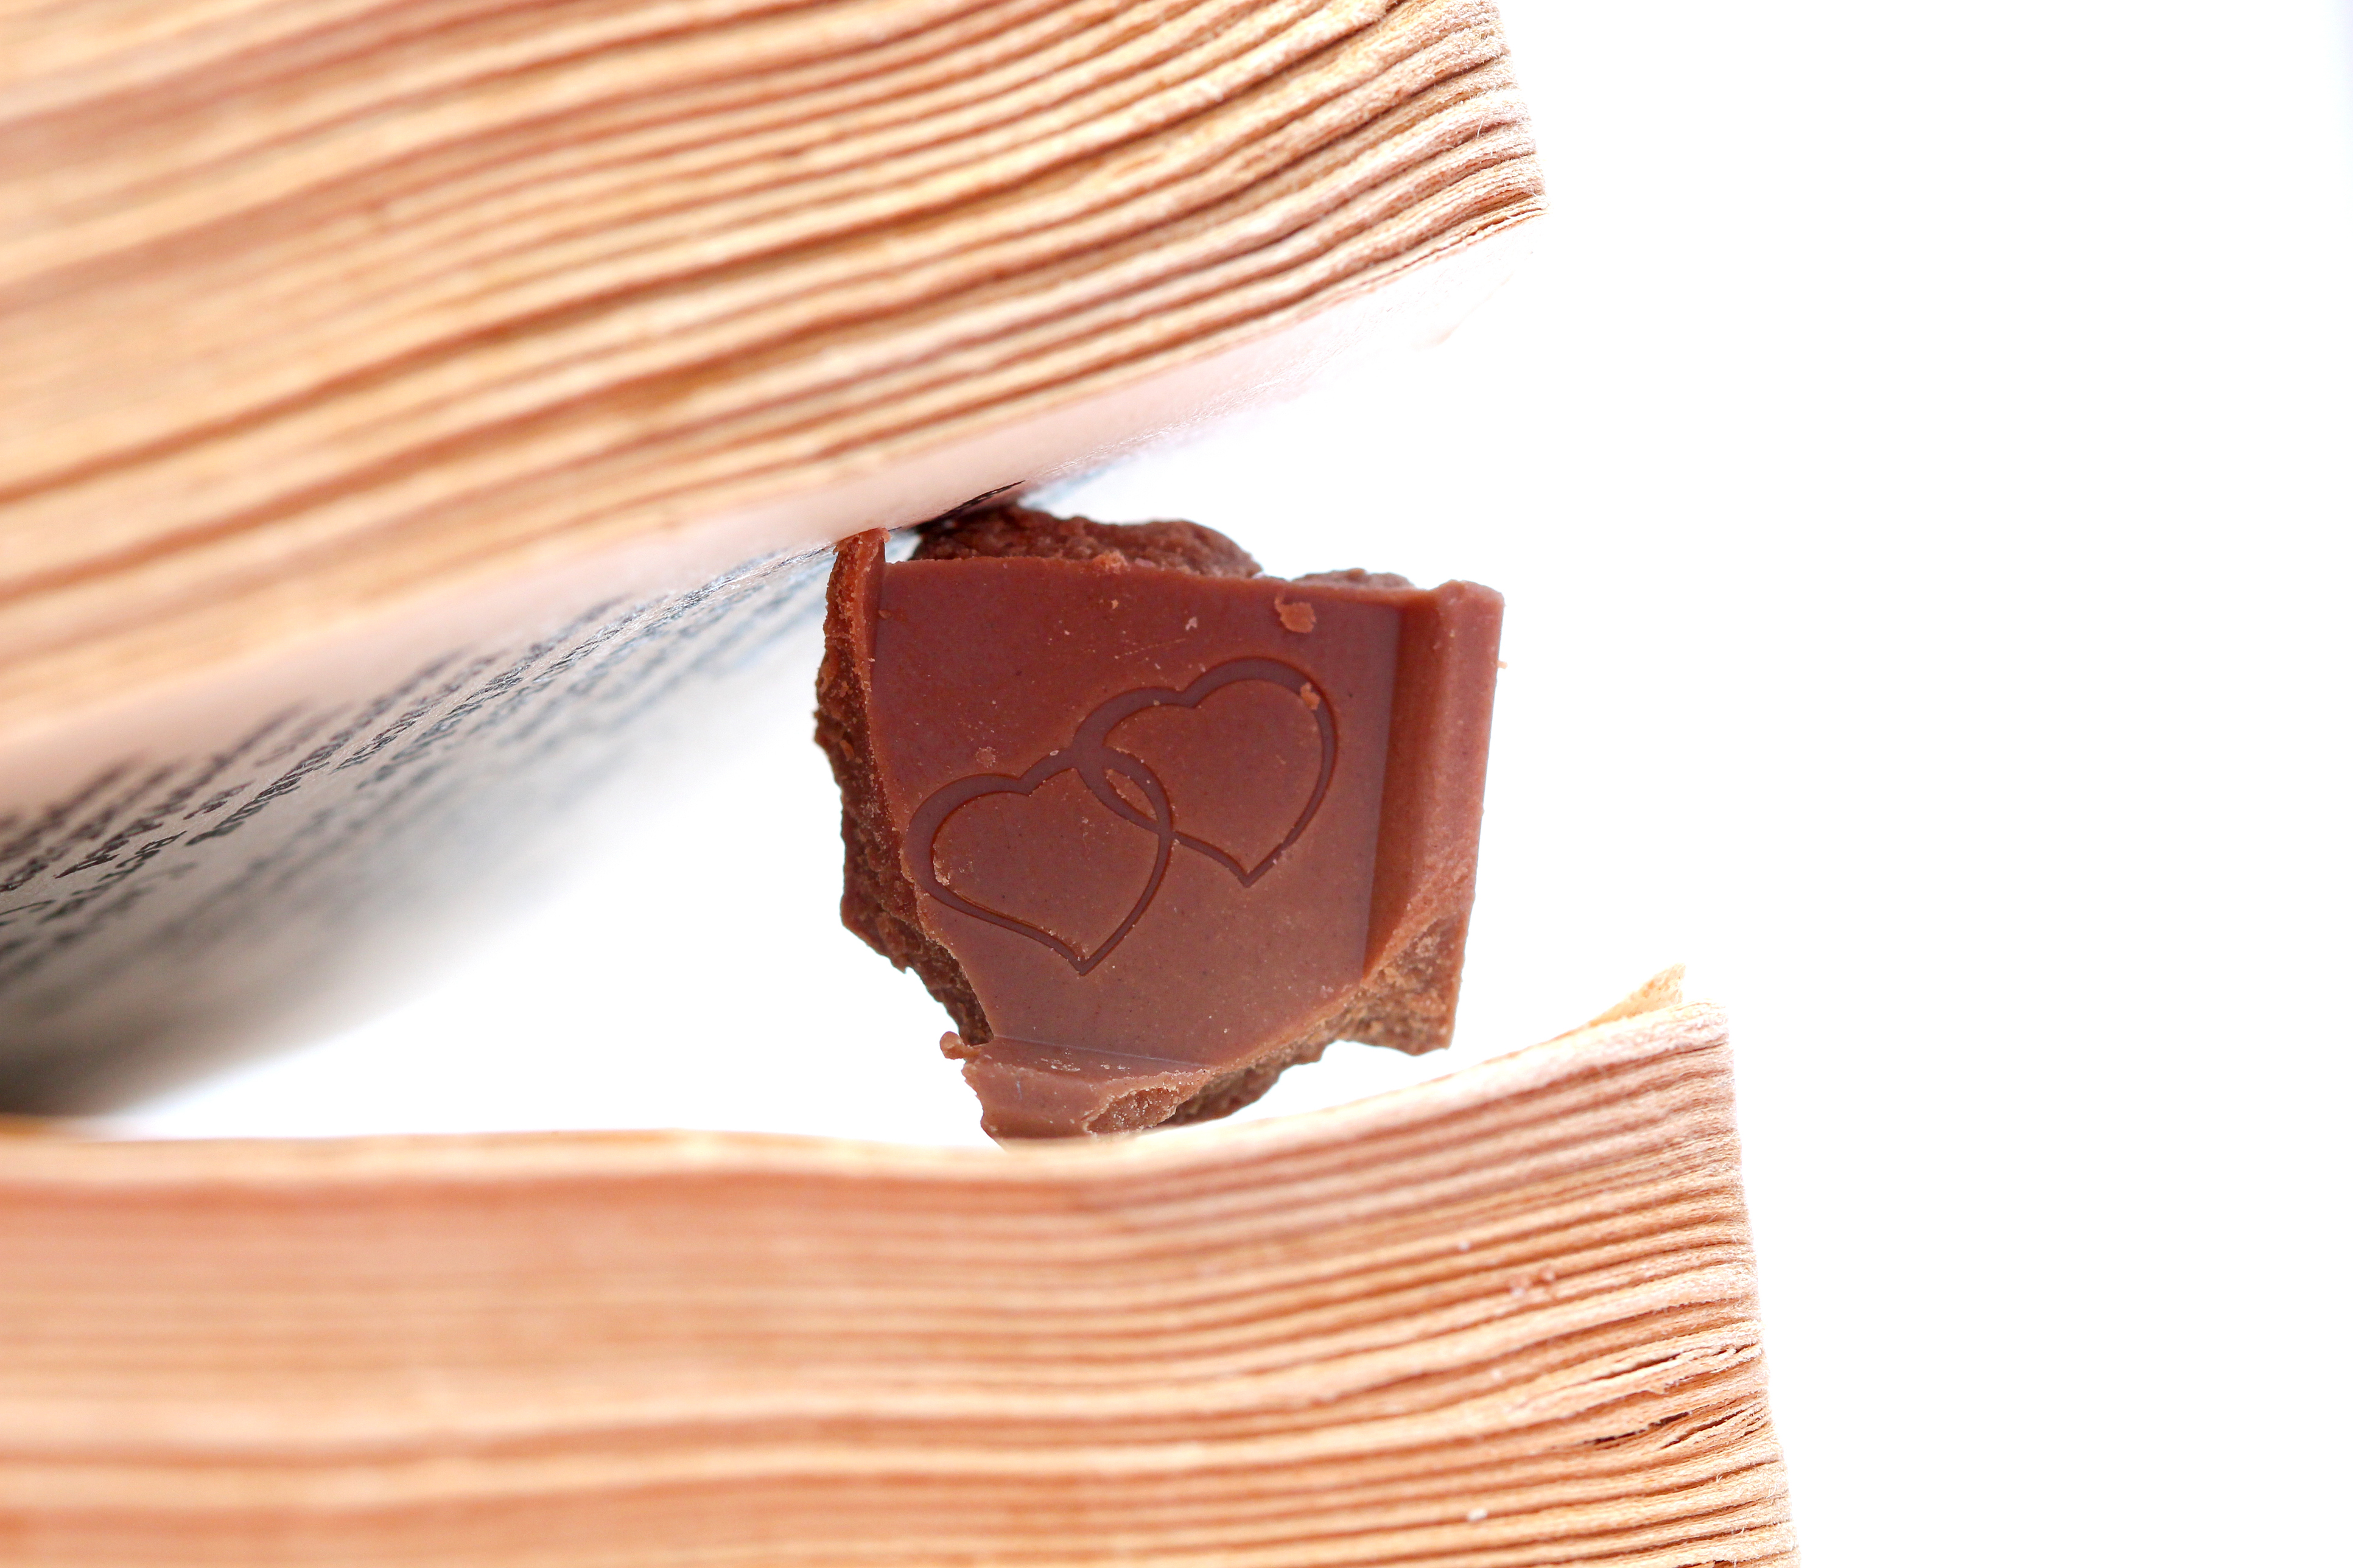 Book Lovers Delight: Genre and Chocolate Pairing